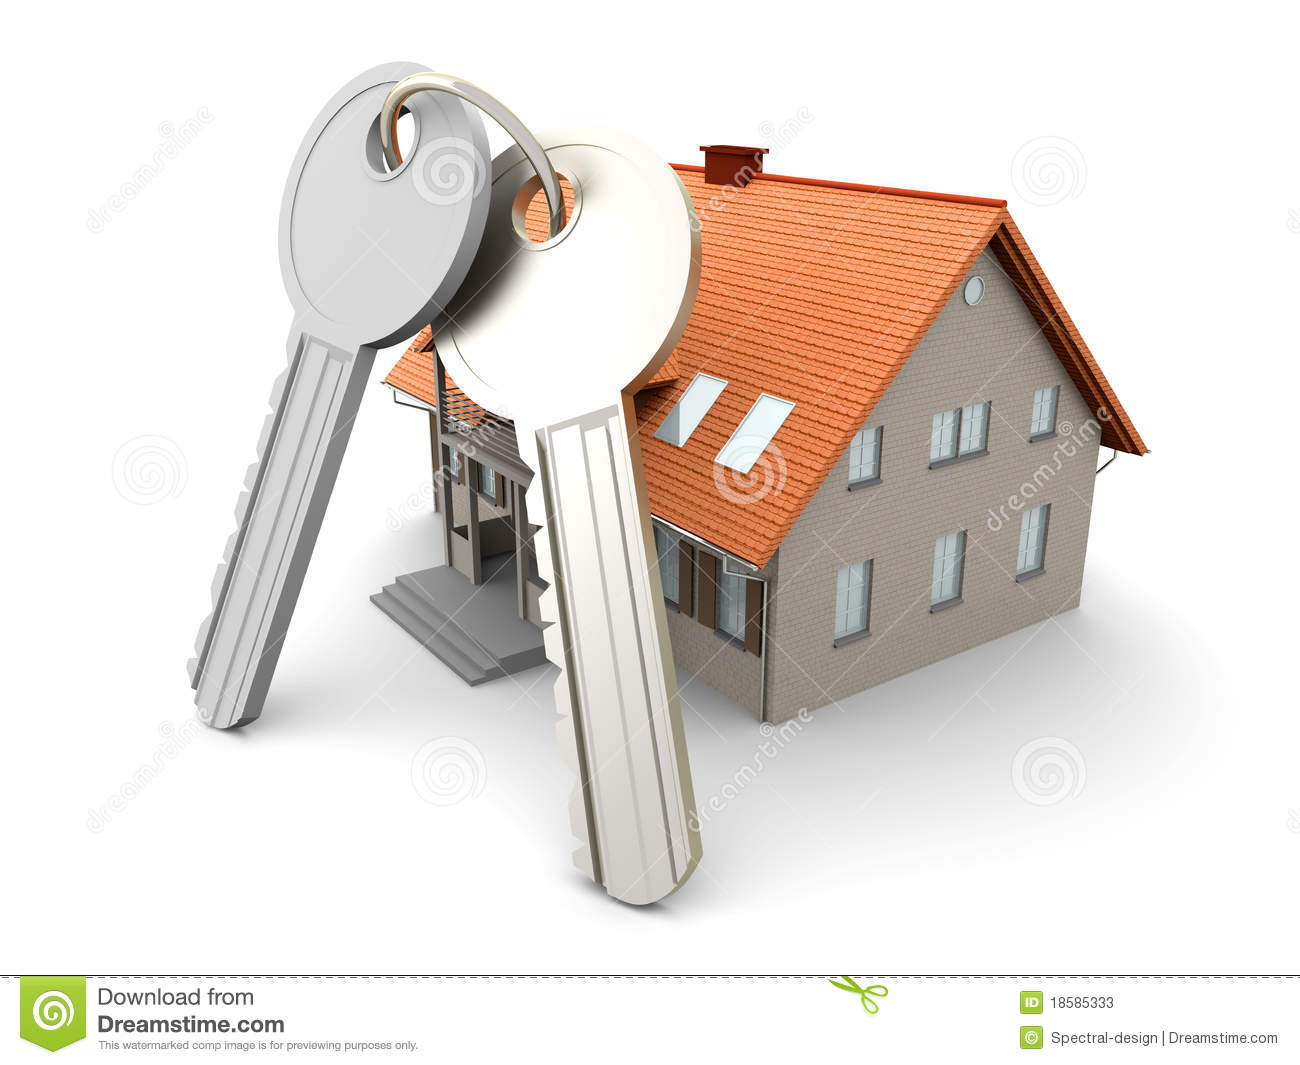 Recessed Doors In Houses And Blocks Of Flats together with Nrg Center together with Our Backyard Chickens A Tour likewise Floorplans besides 2009 Us Department Of State Embassy  pound Islamabad Pakistan. on building security access plans